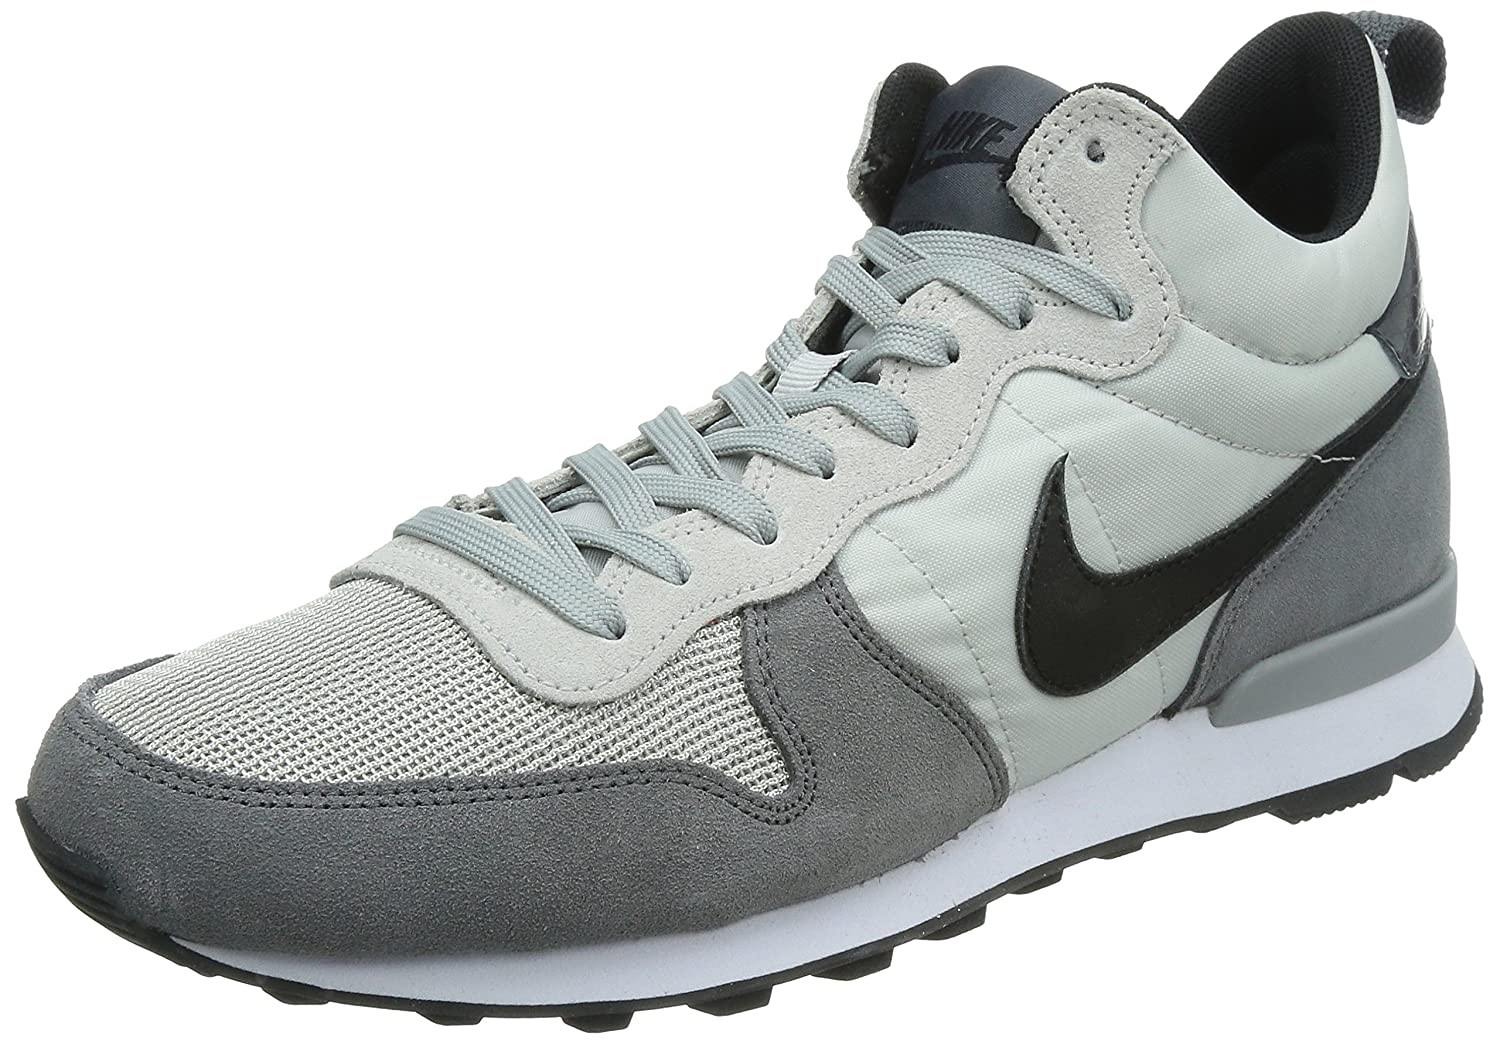 NIKE Internationalist Mid 682844 Trainers Unisex-Adult Grey Size  5.5 UK   Amazon.co.uk  Shoes   Bags 1778f3d08